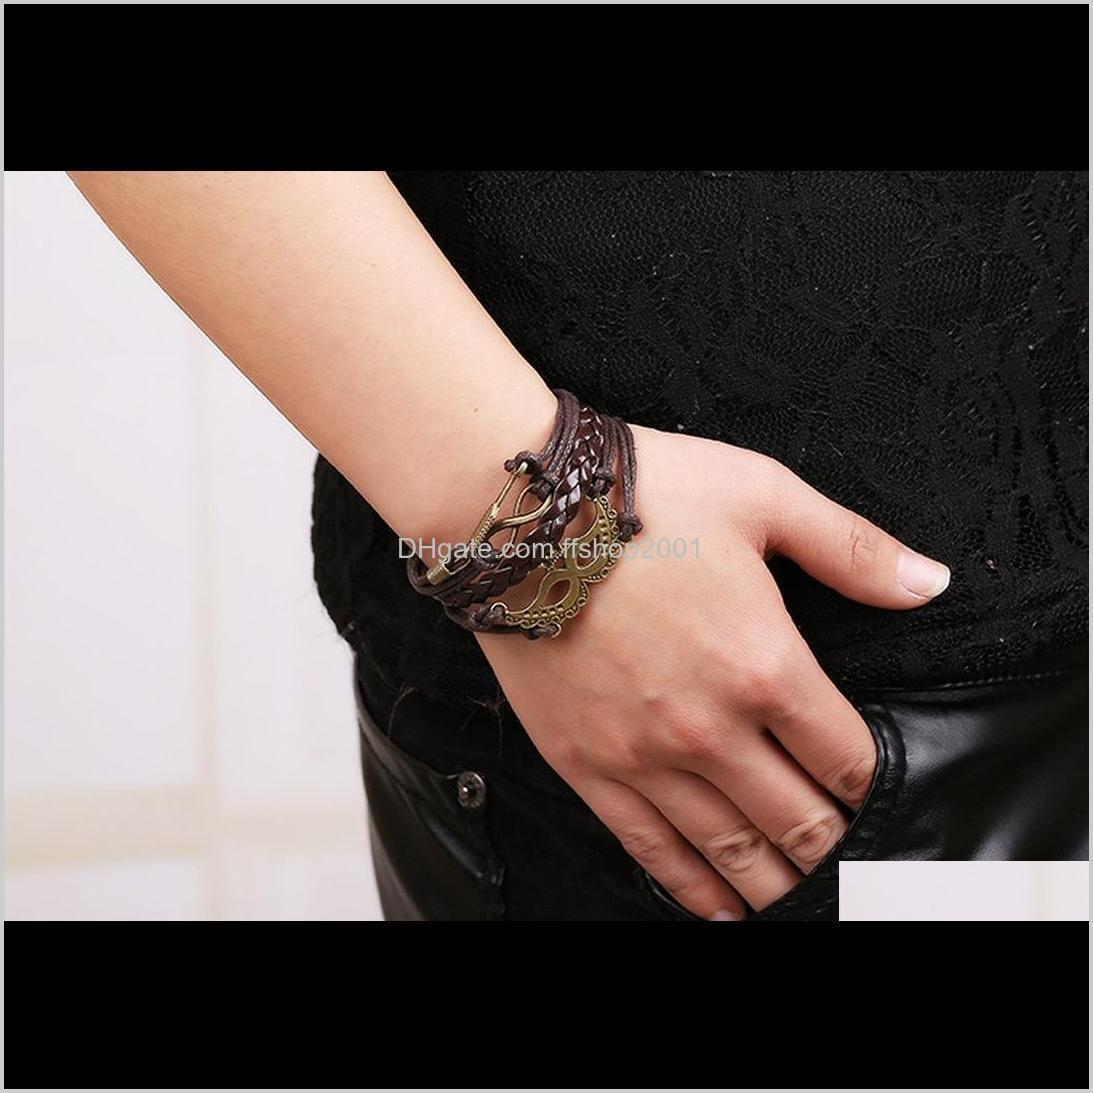 ancient crown mask charm bracelet infinity arrow multilayer bracelets women fashion jewelry will and sandy gift